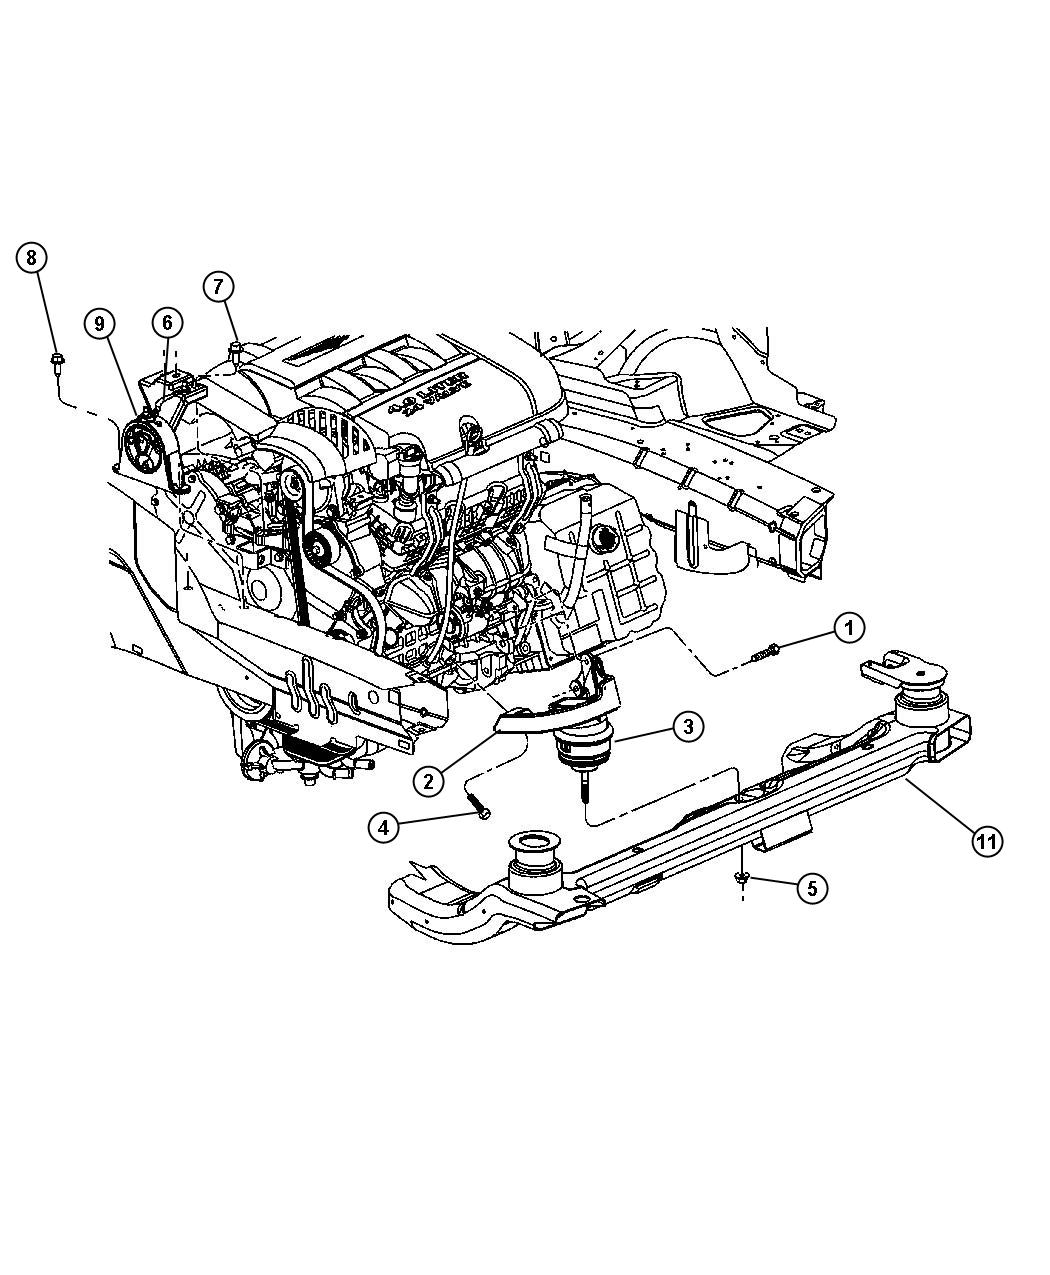 diagram  2004 chrysler pacifica engine diagram full